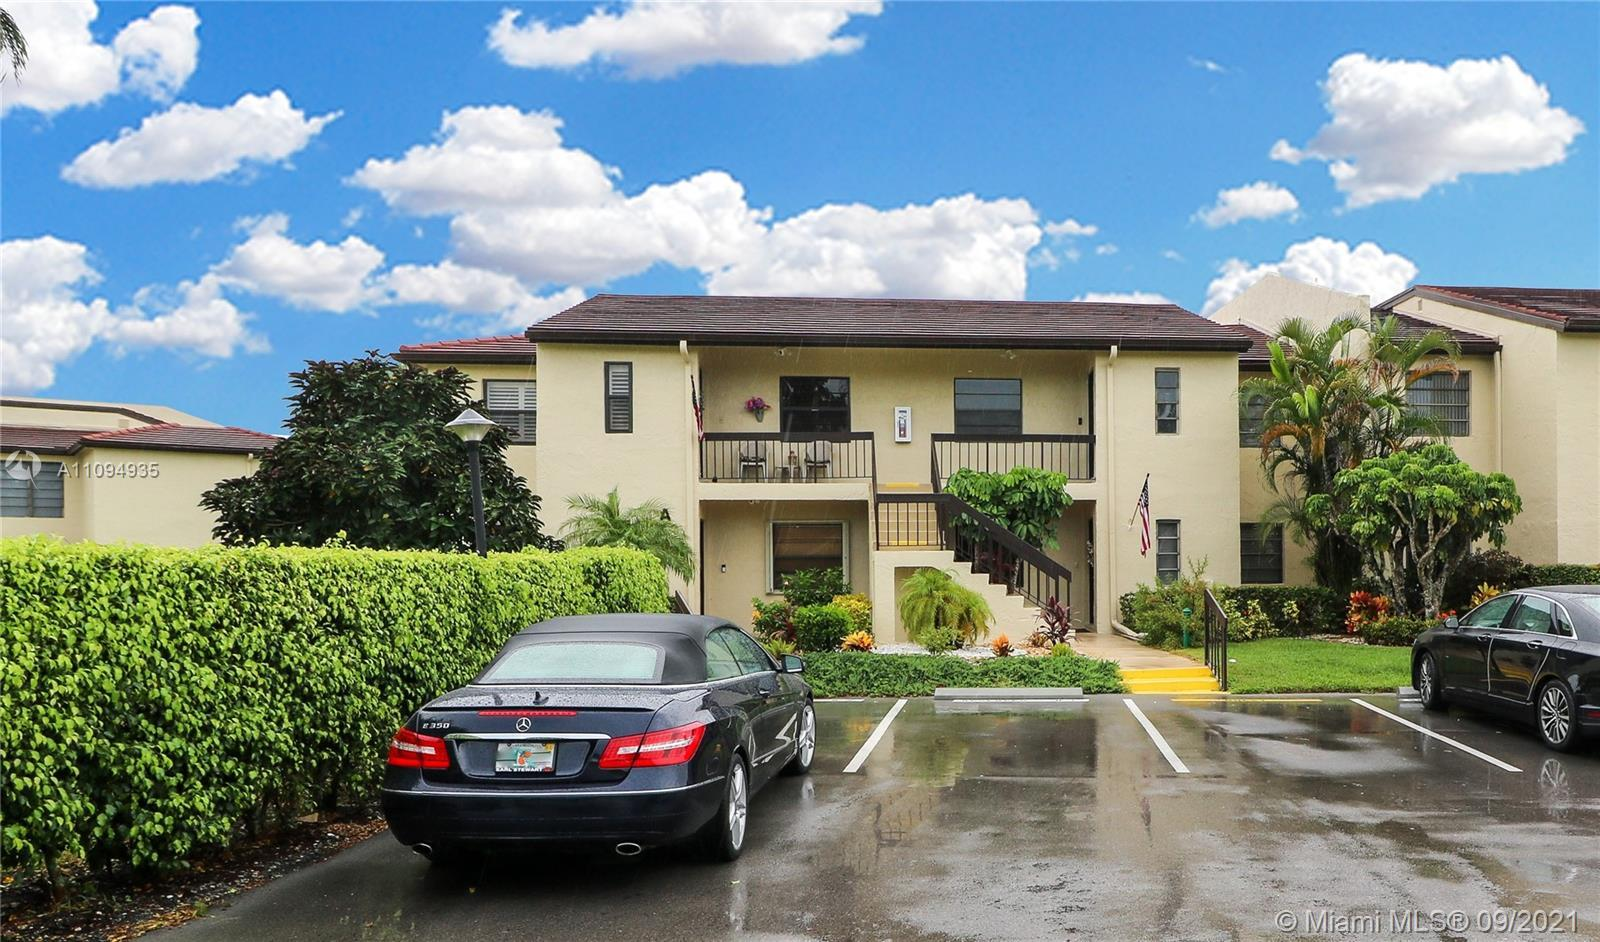 Don't miss out on this charming turnkey condo located in the spectacular 55+ gated community of Fair